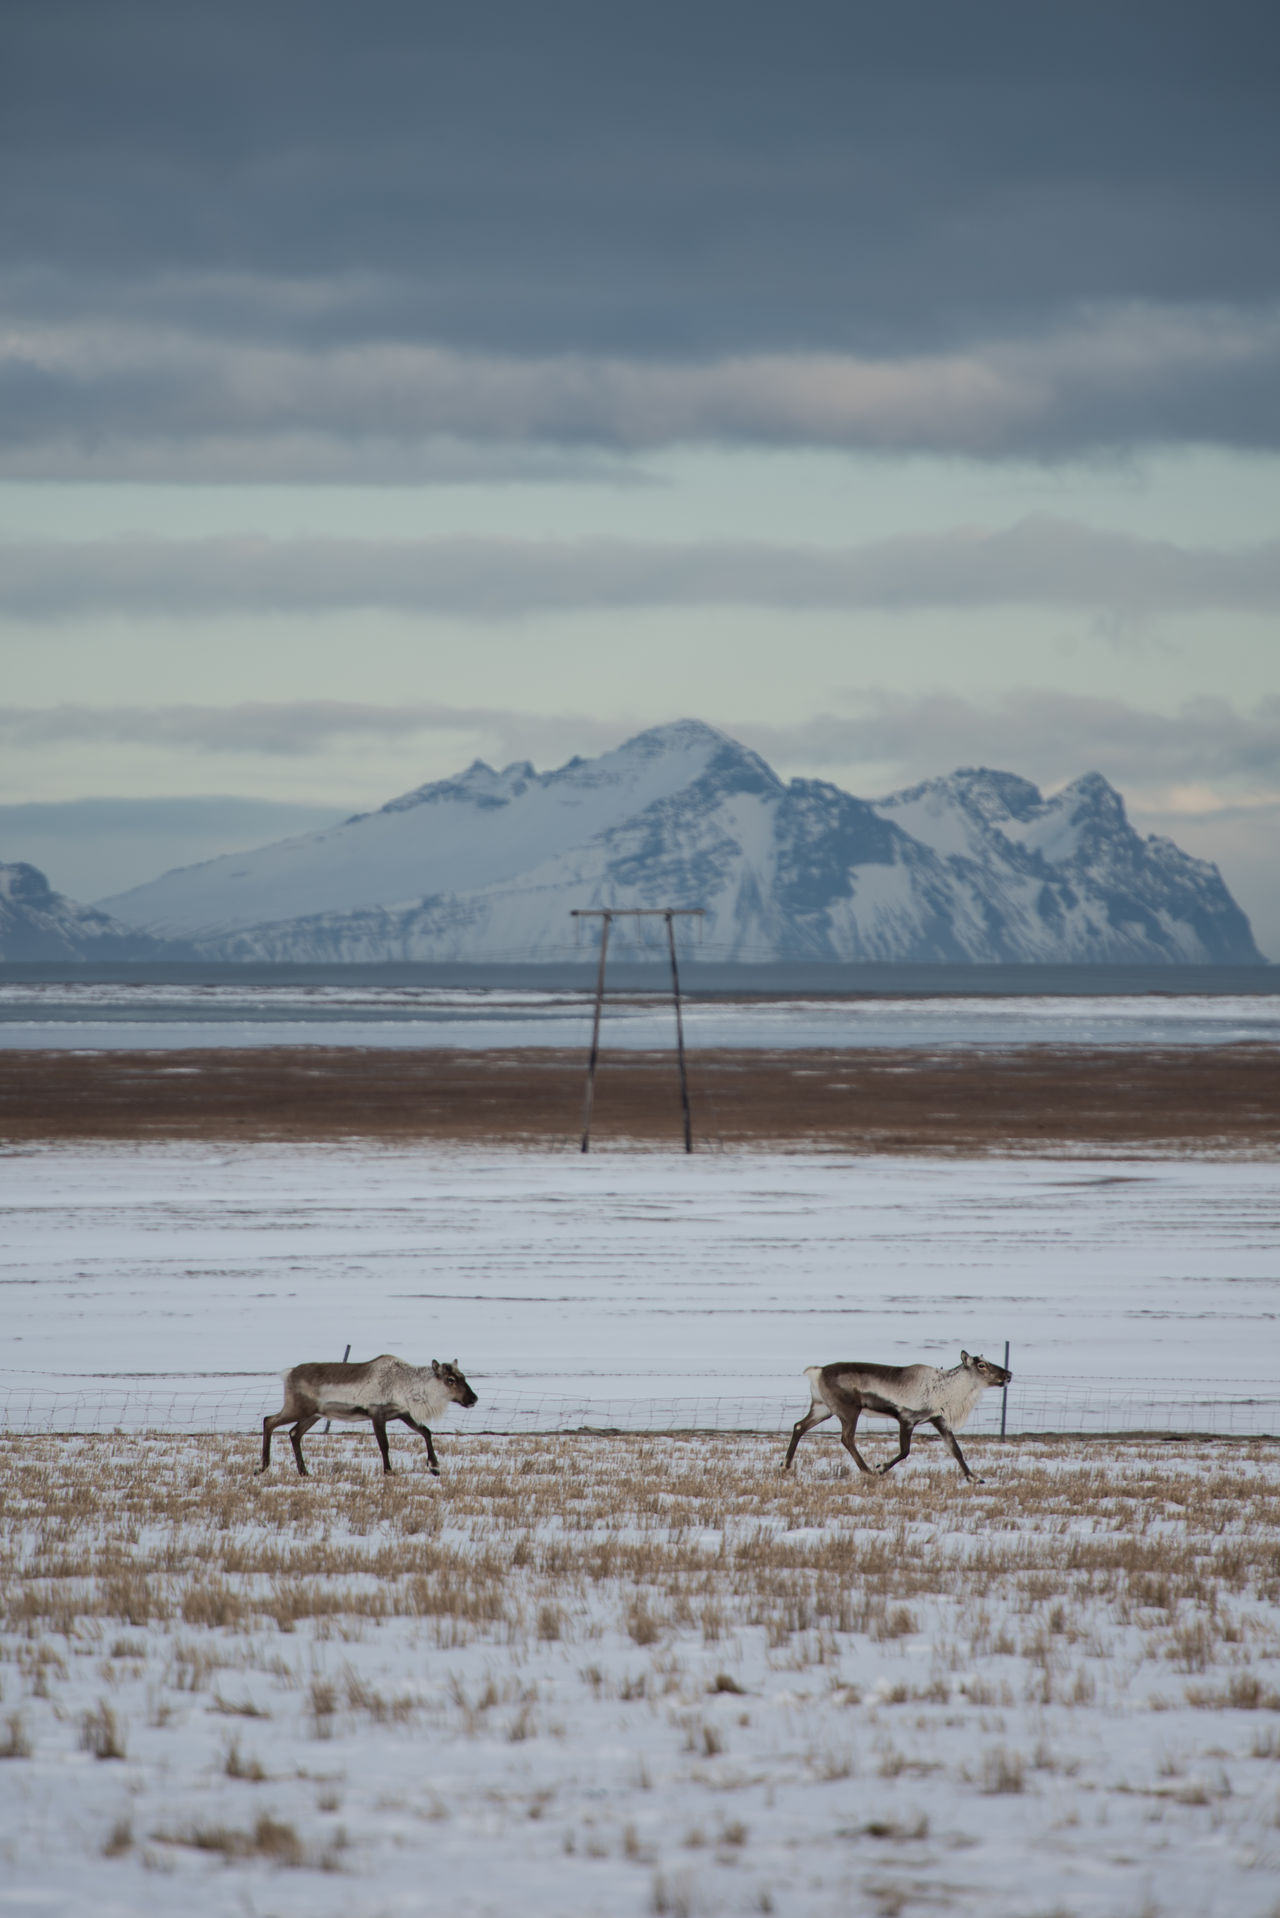 """Winter reindeer During the winter, herds of wild Icelandic reindeer migrate down to lower lands to forage for food. We spotted these reindeer at the end of the day, near the Vatnajökull glacier. (Nikon D810 70.0-200.0 mm f/2.8 ƒ/5.0 340.0 mm 1/200"""" iso 31) Animal Animal Themes Animals In The Wild Beauty In Nature Cold Temperature Day EyeEm Best Shots EyeEm Nature Lover Iceland Landscape Landscapes Mammal Mountain Mountain Range Nature No People Outdoors Reindeer Scandinavia Scenics Snow Vatnajökull Weather Winter Winter"""